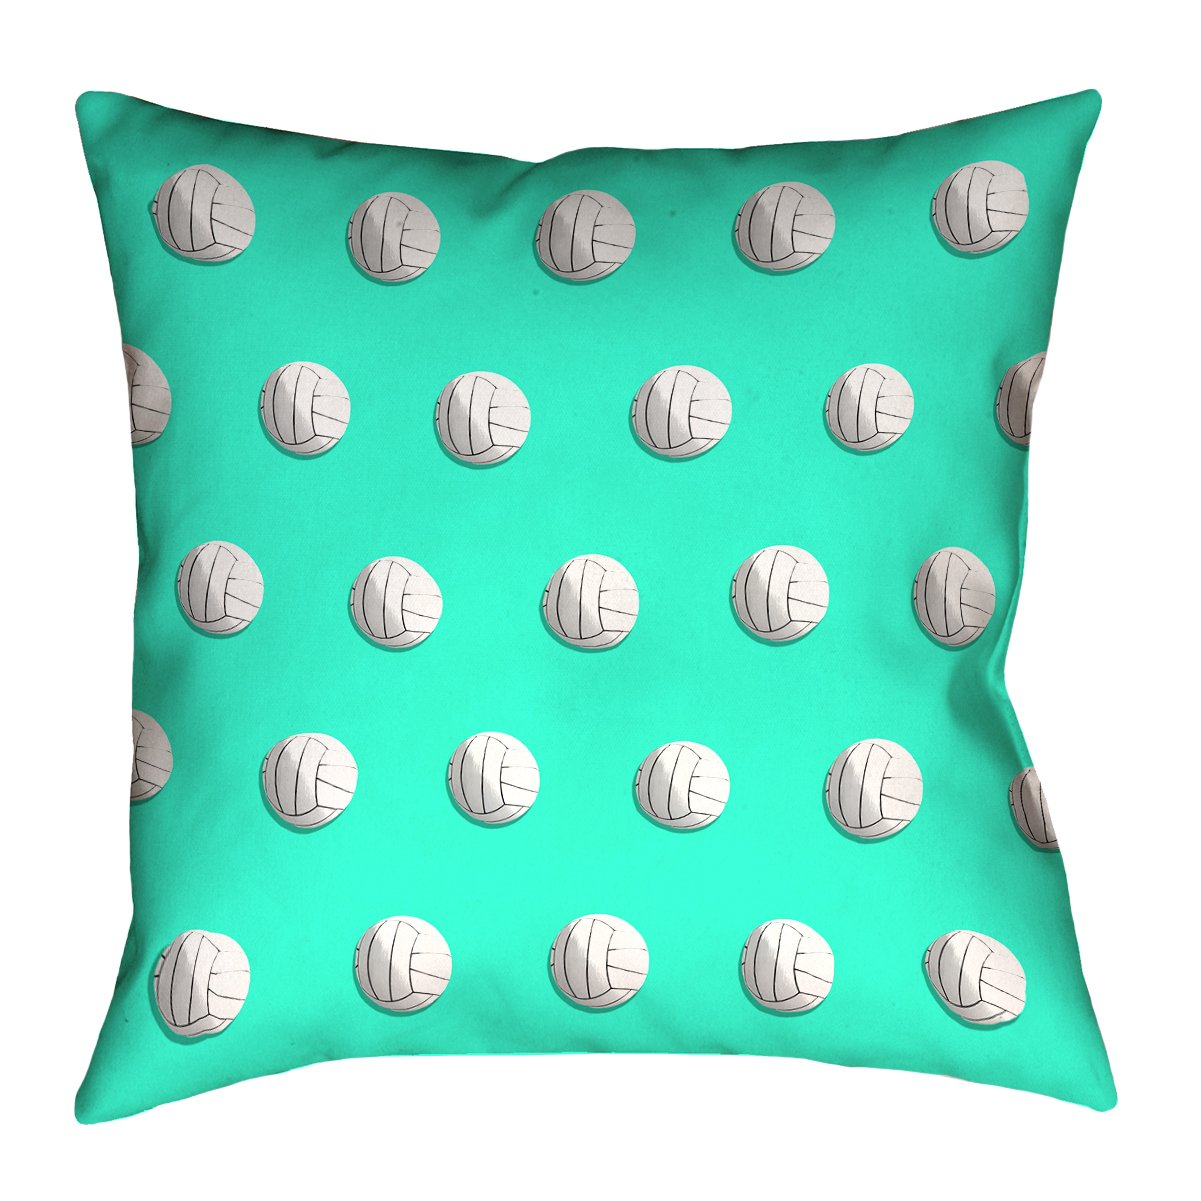 ArtVerse Katelyn Smith 20 x 20 Cotton Twill Double Sided Print with Concealed Zipper /& Insert Teal Volleyball Pillow